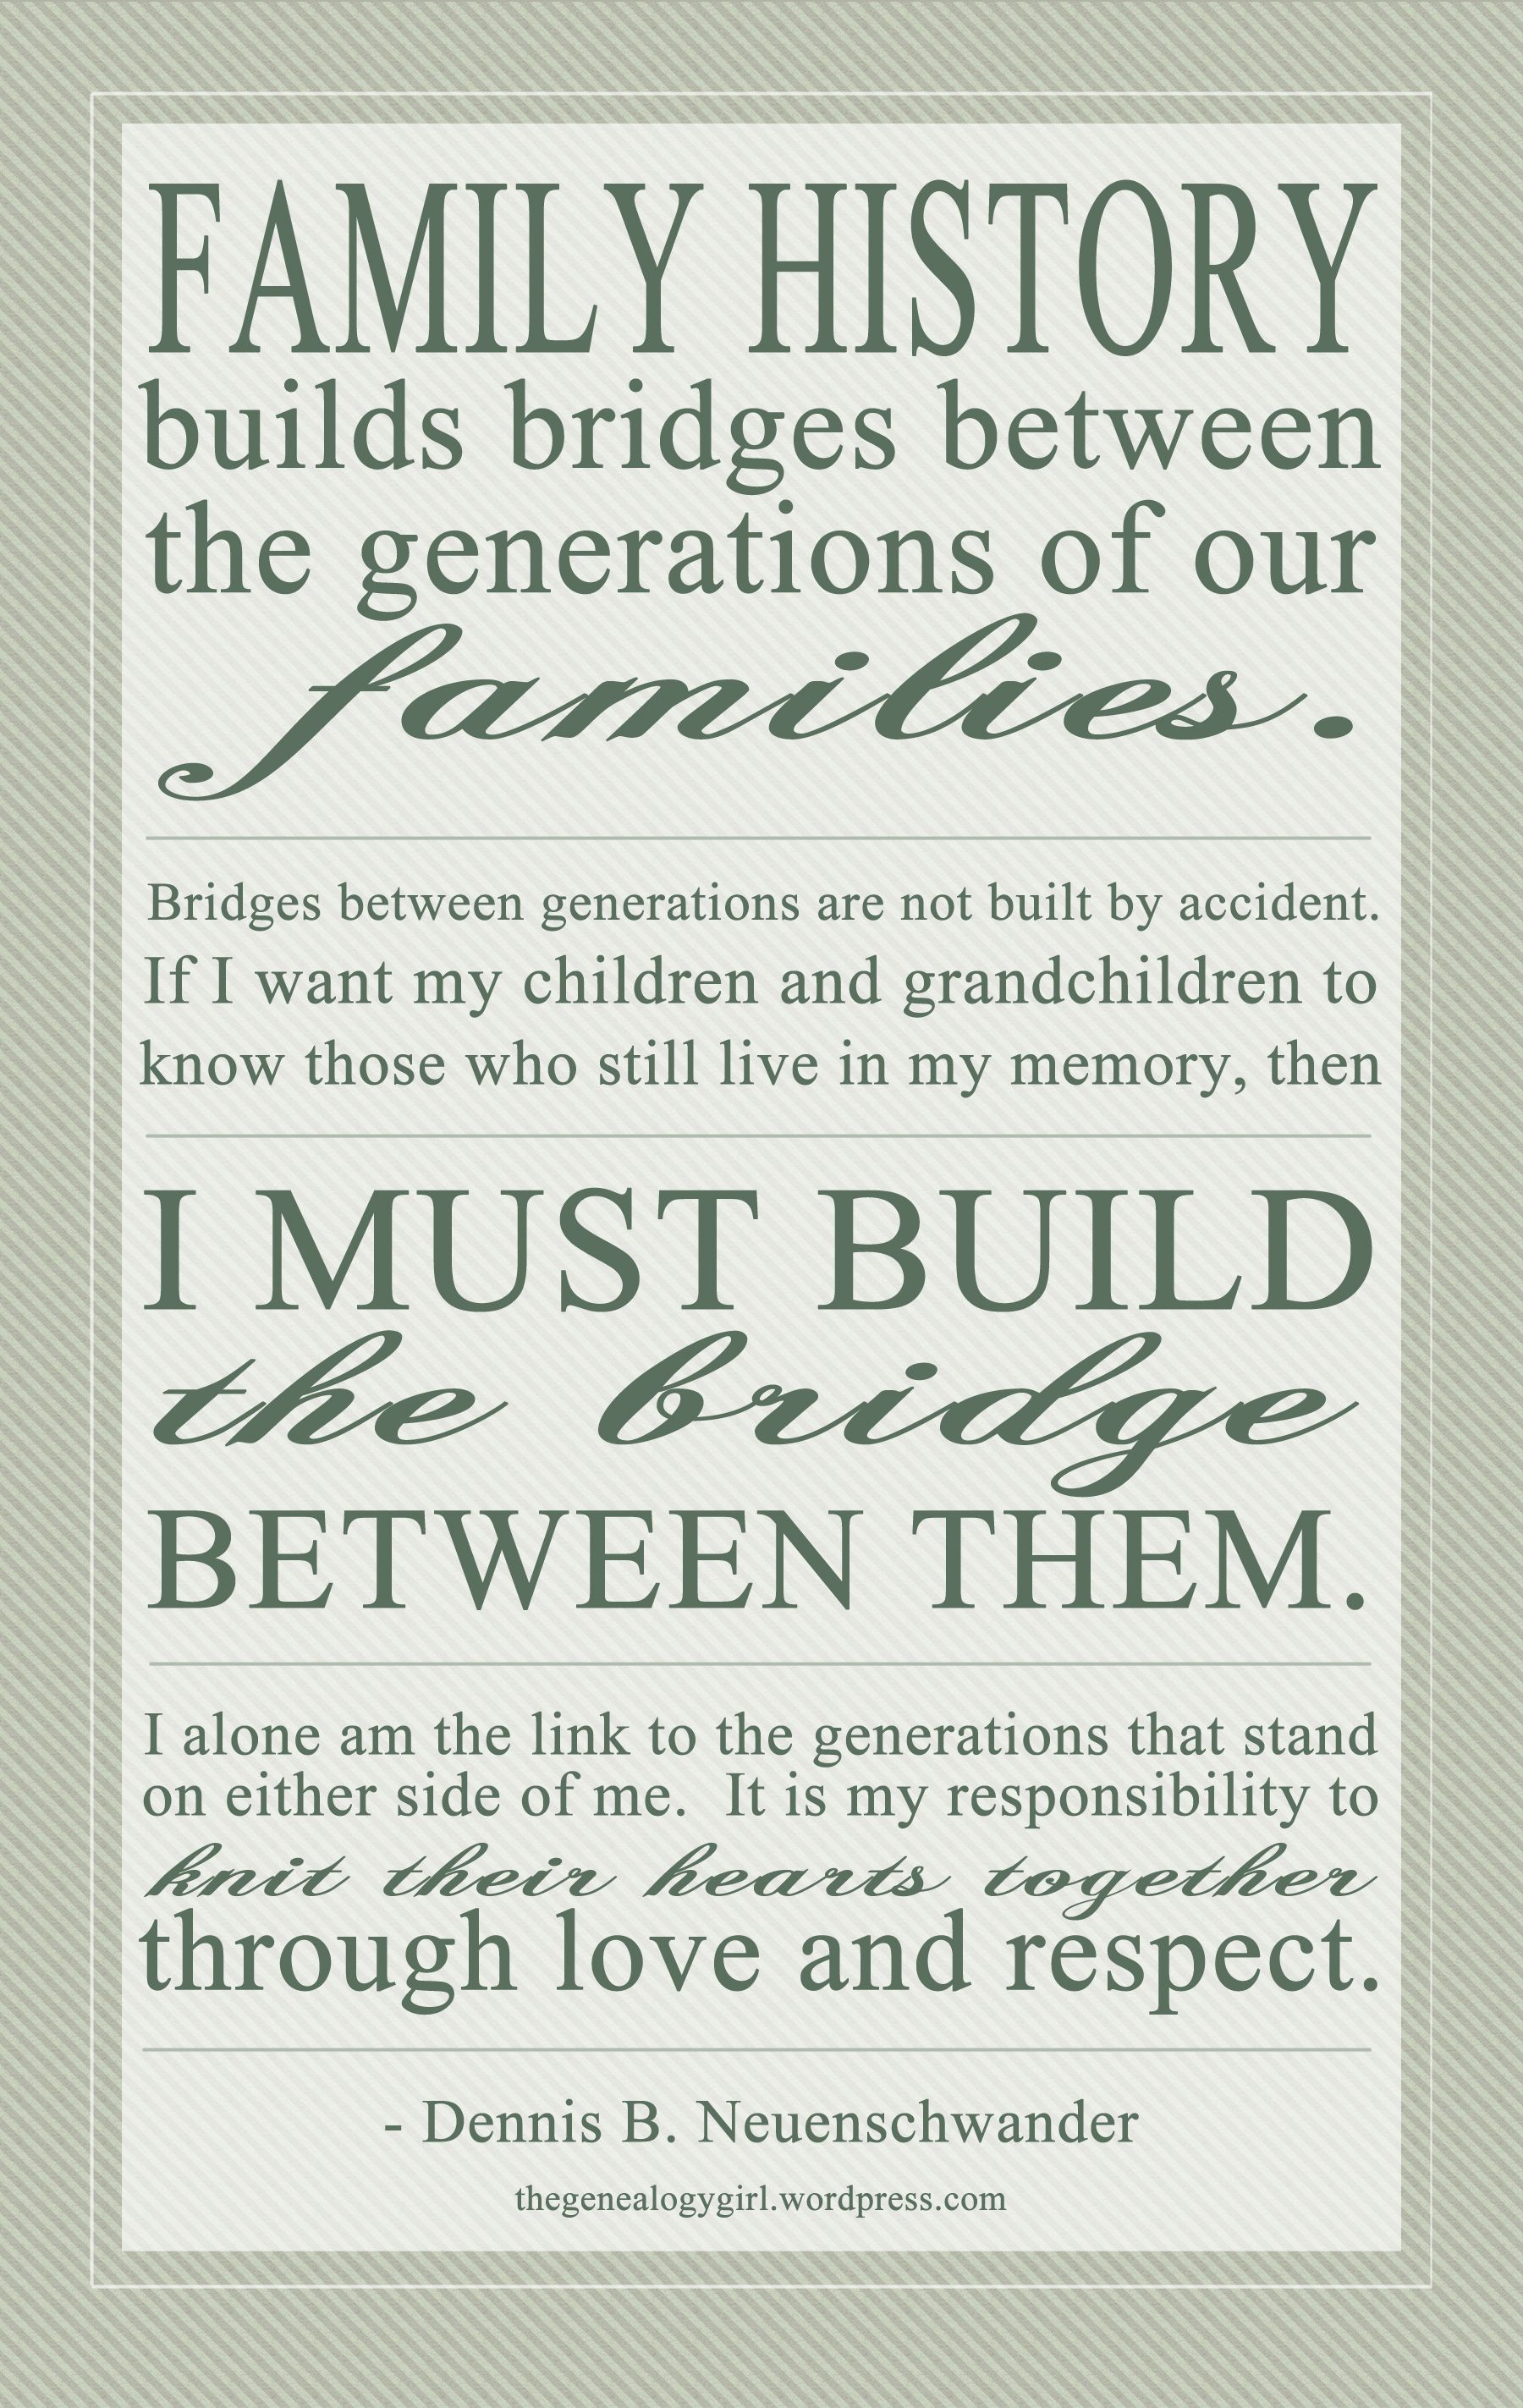 I must build the bridge between them family history quotes